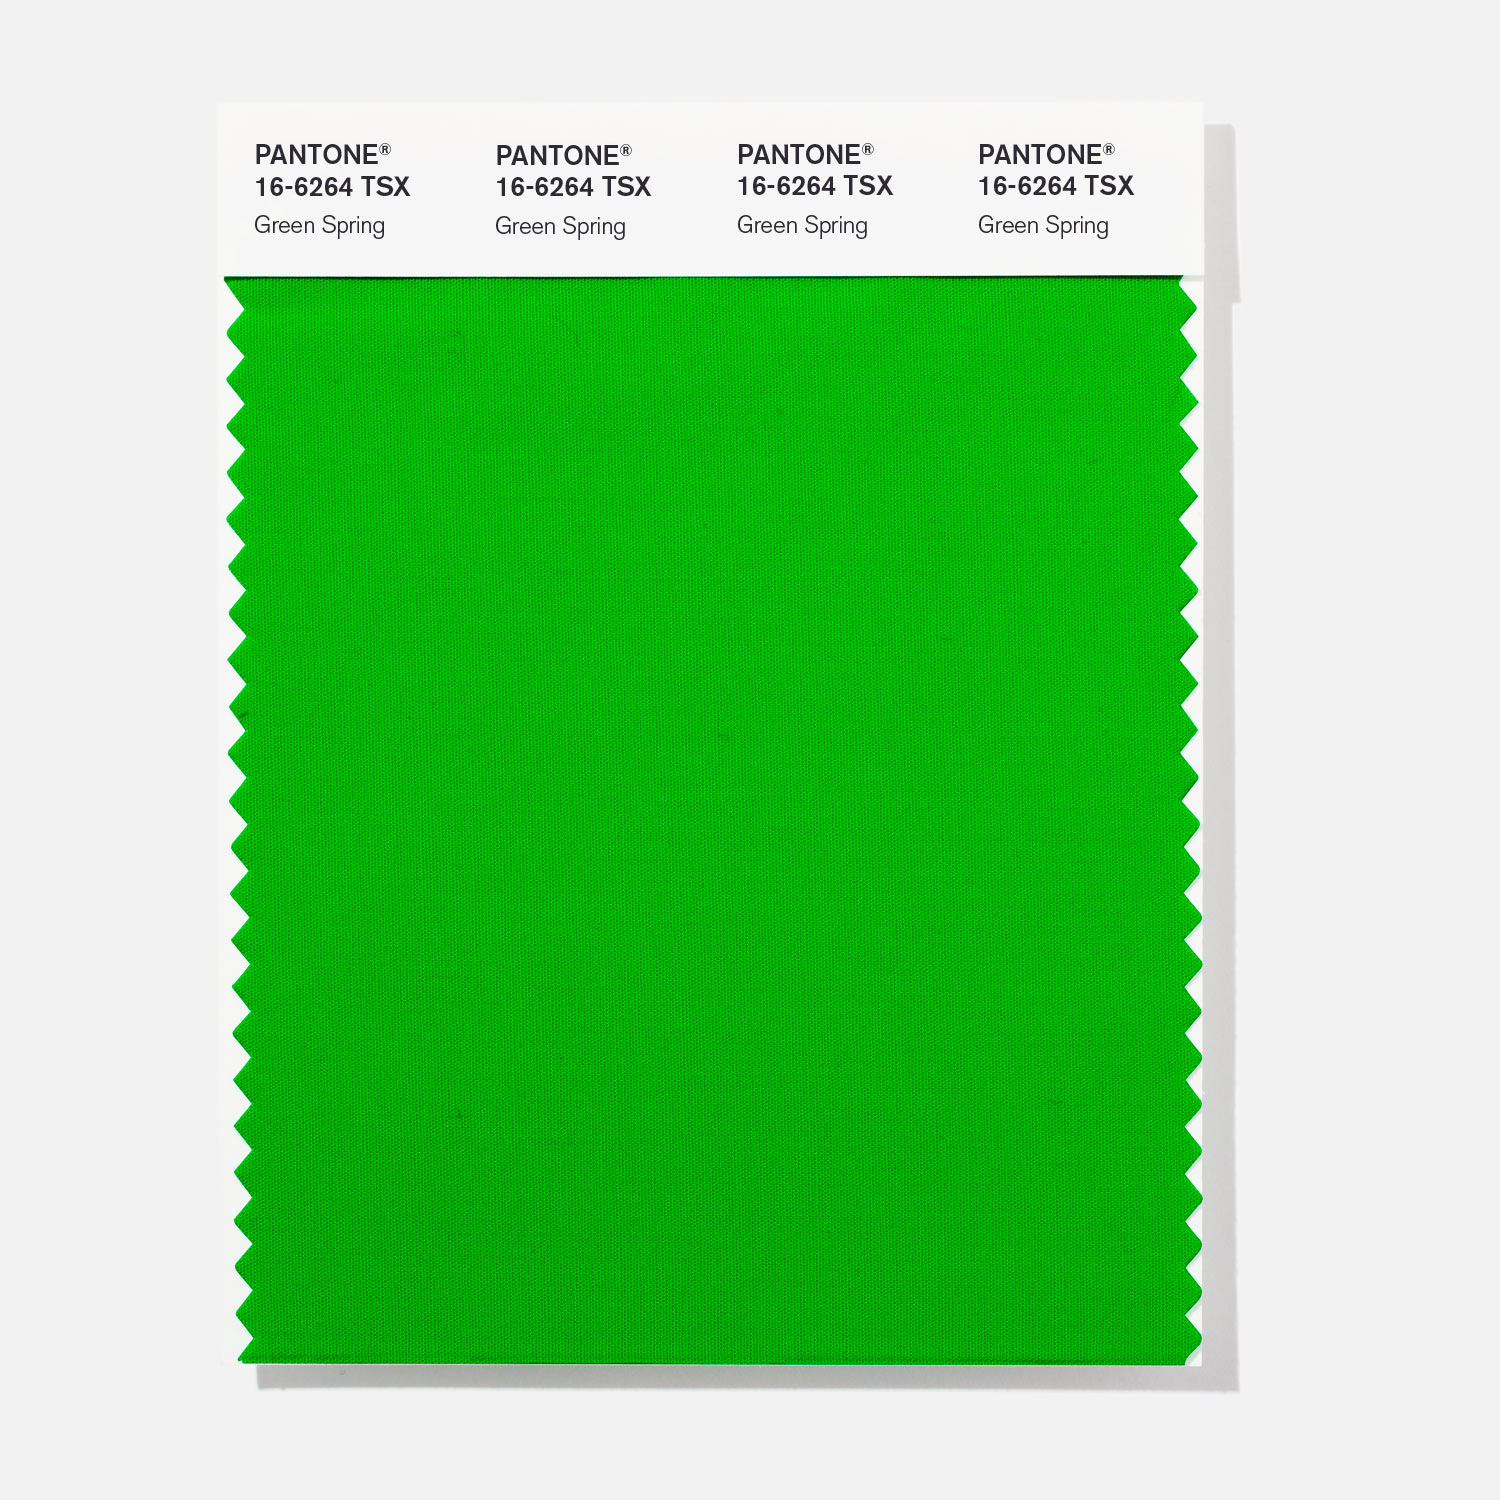 BUY Pantone Polyester Swatch 16-6264 Green Spring